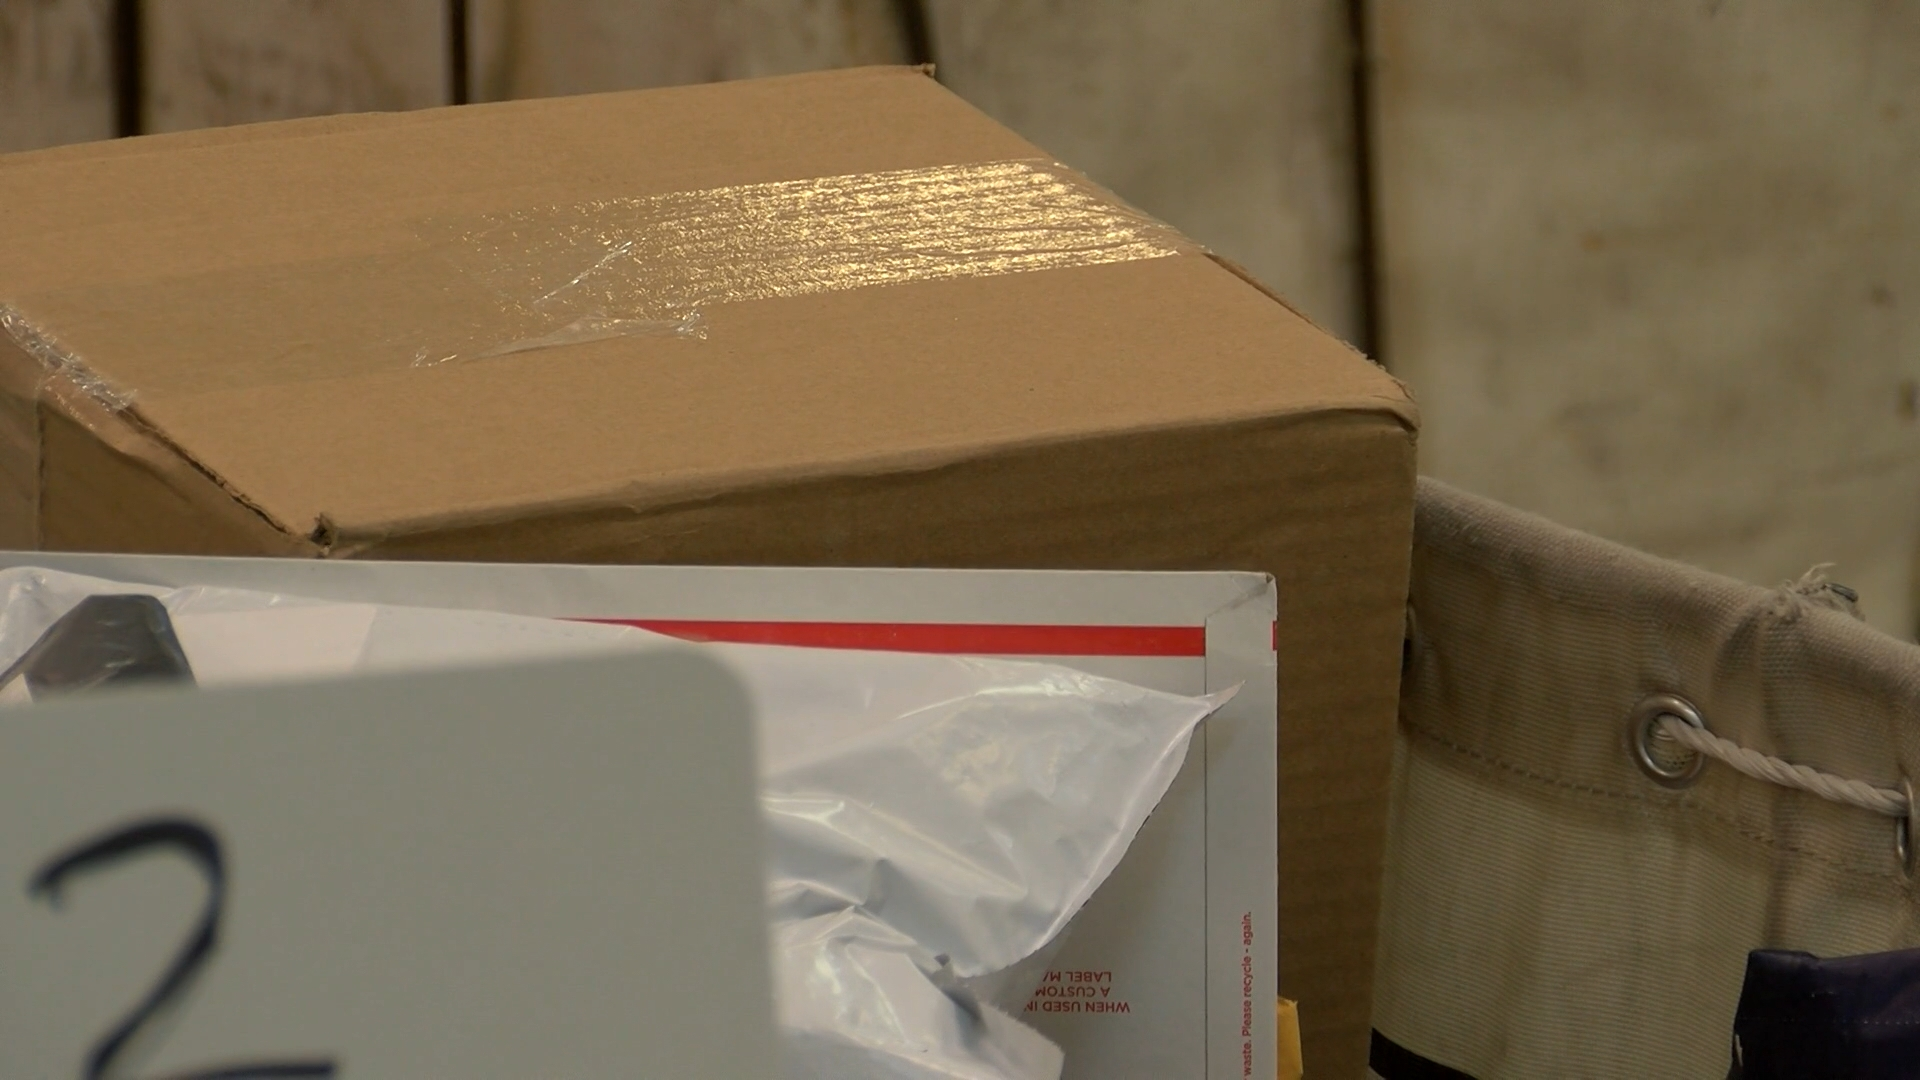 What does the USPS do to packages that contain prohibited items?